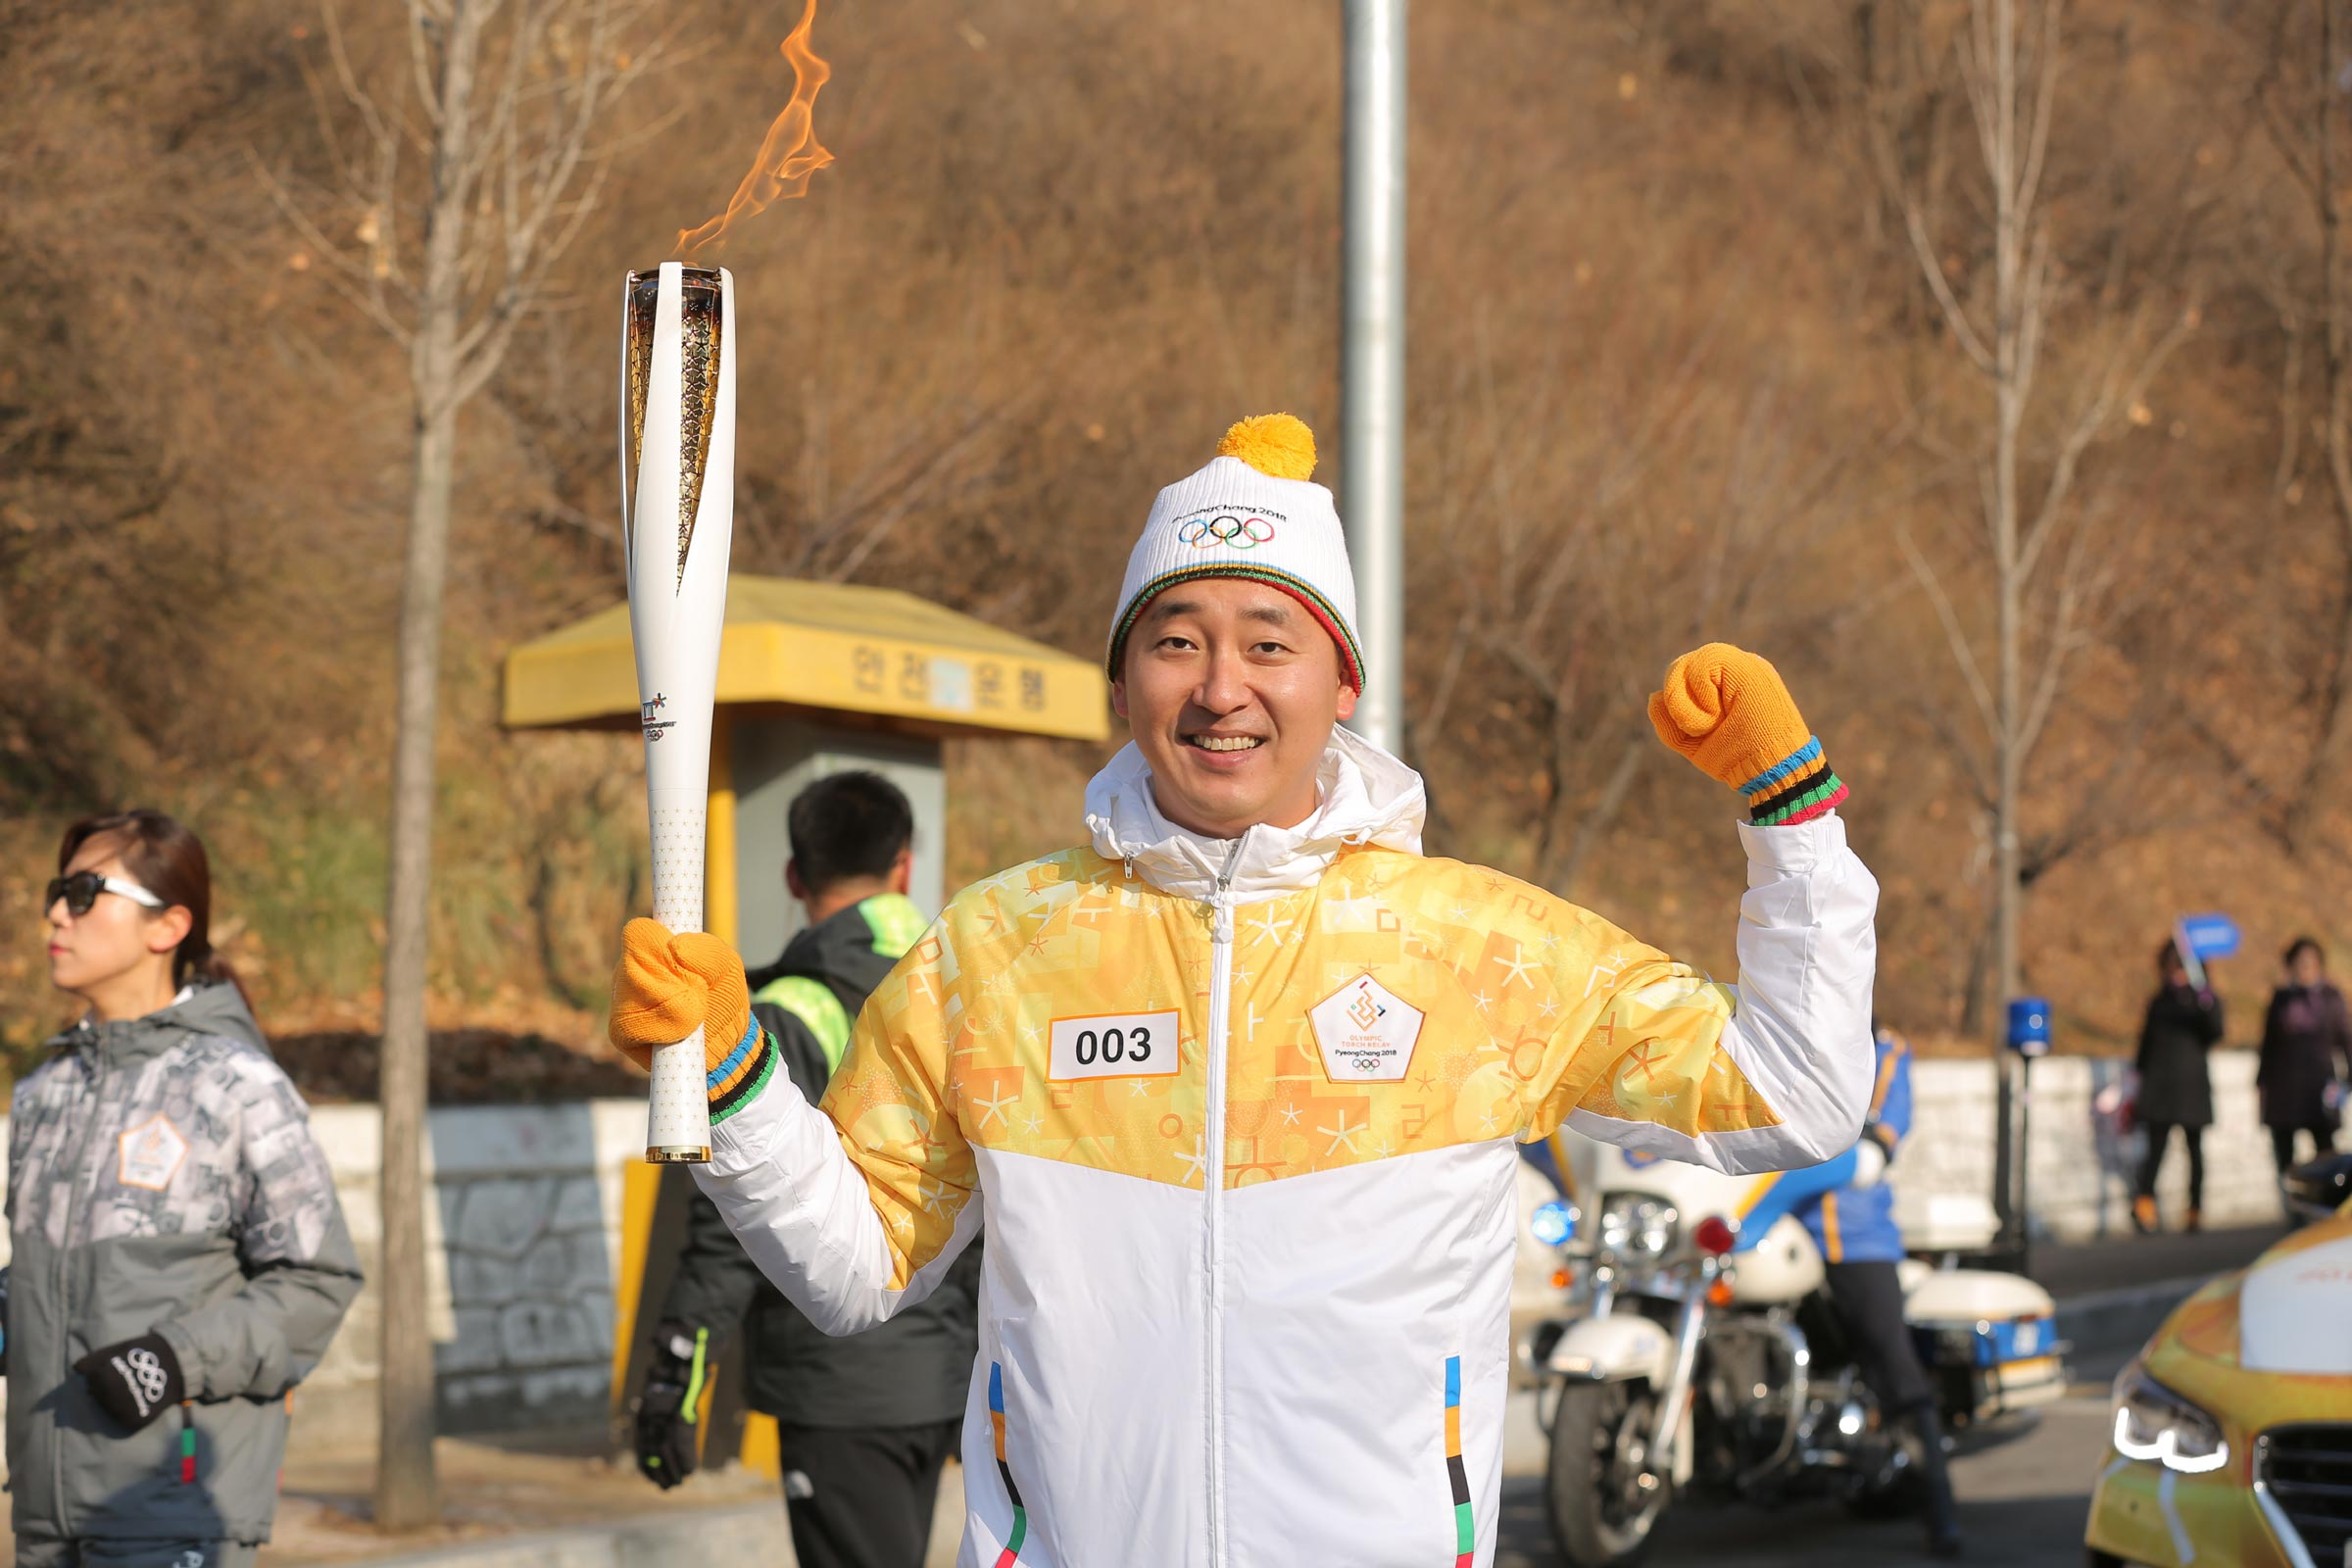 PyeongChang 2018 Olympic Torch Relay - Day 56